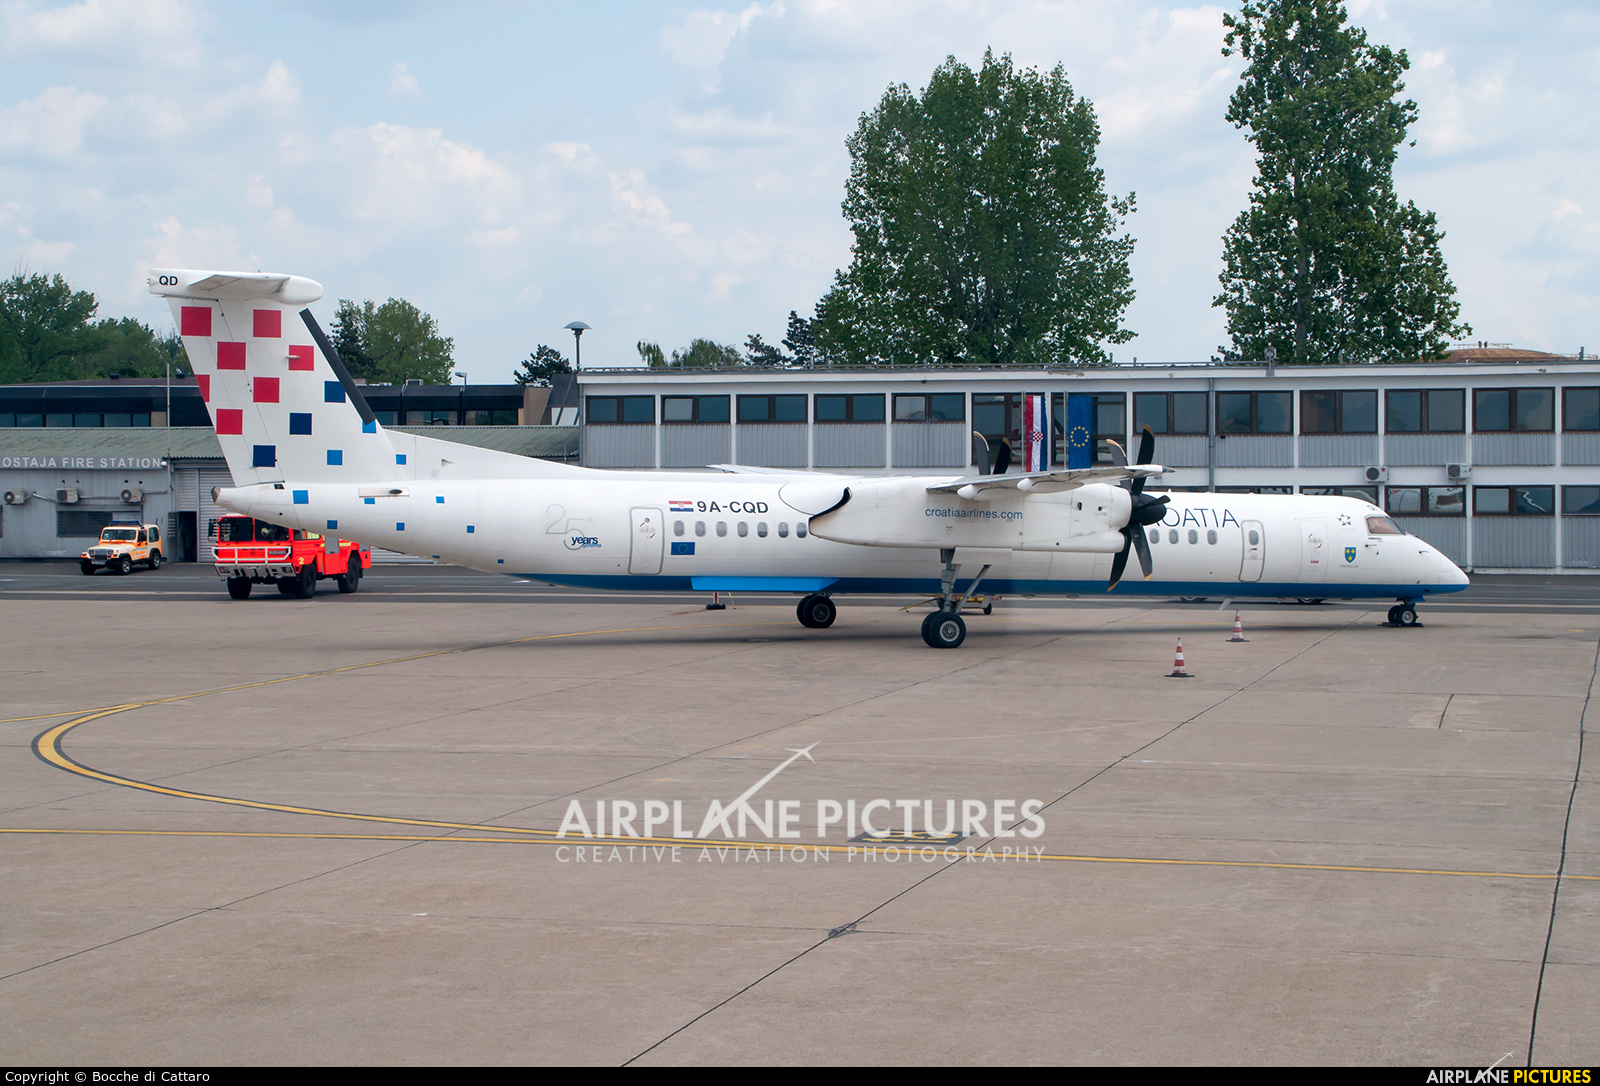 Croatia Airlines 9A-CQD aircraft at Zagreb